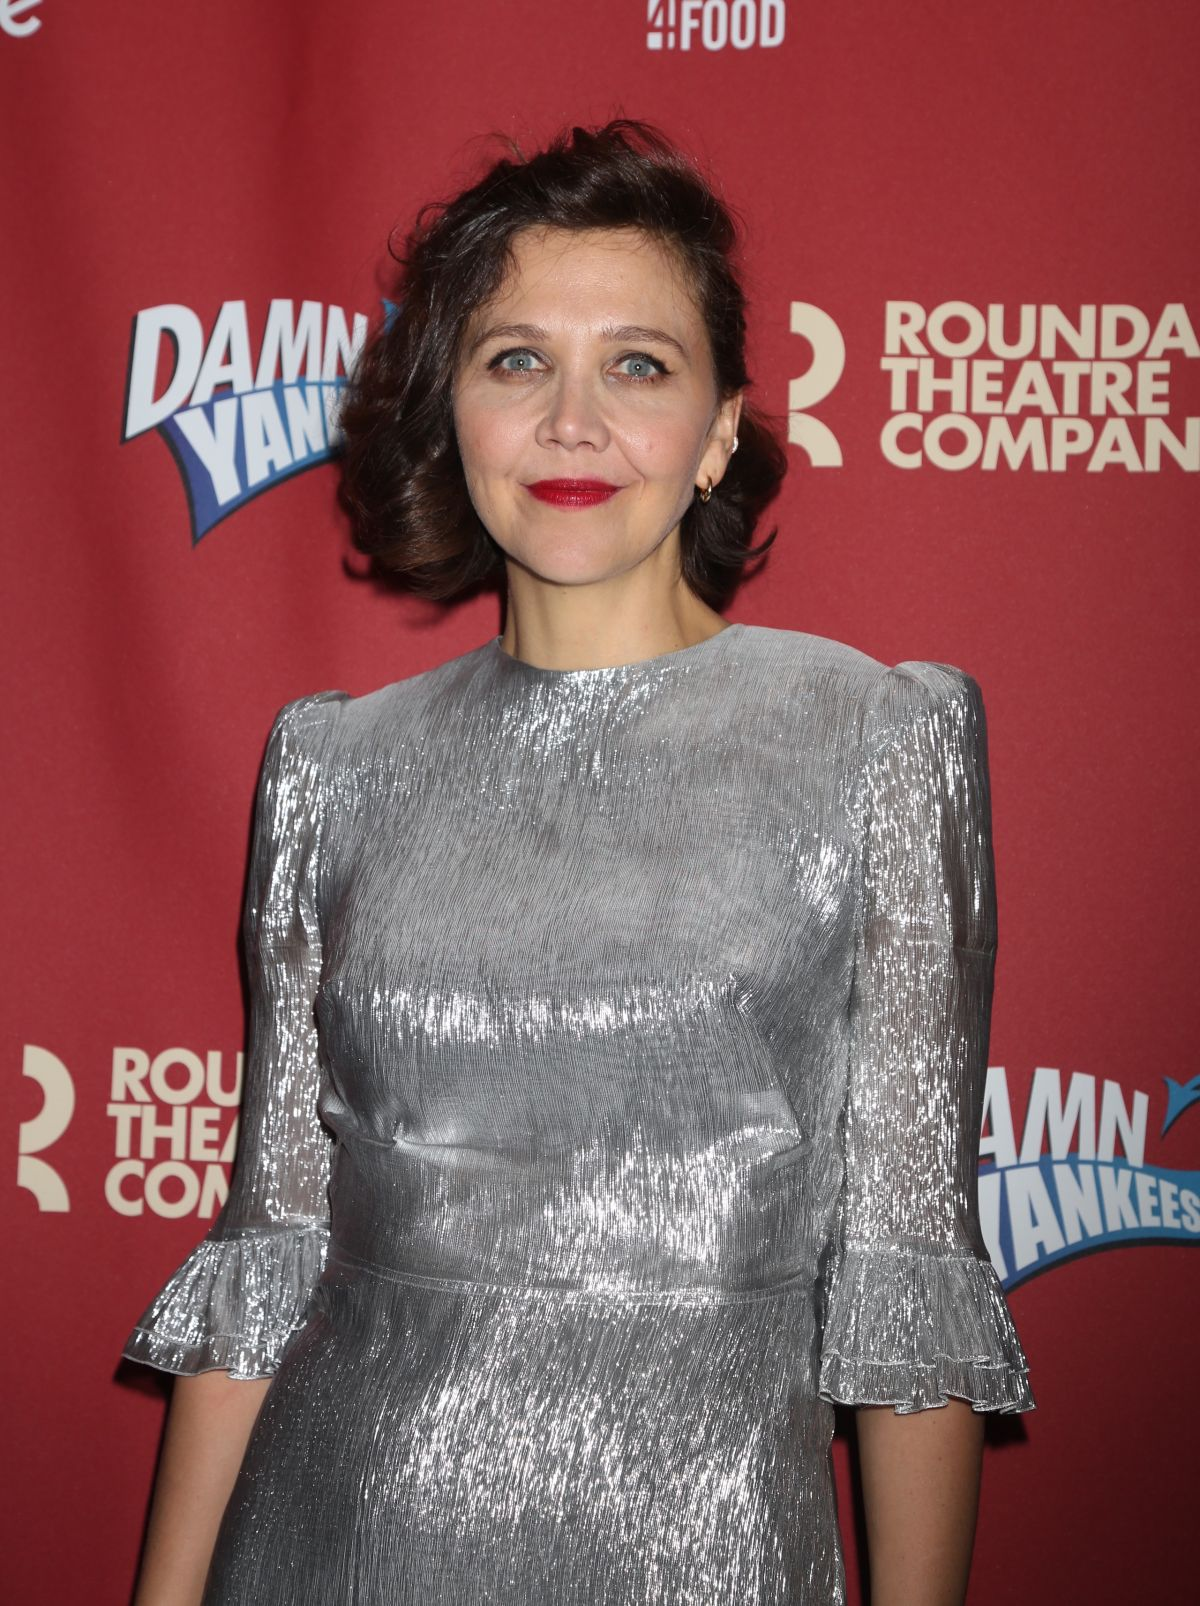 MAGGIE GYLLENHAAL at Benefit Concert Reading of Damn ... Maggie Gyllenhaal